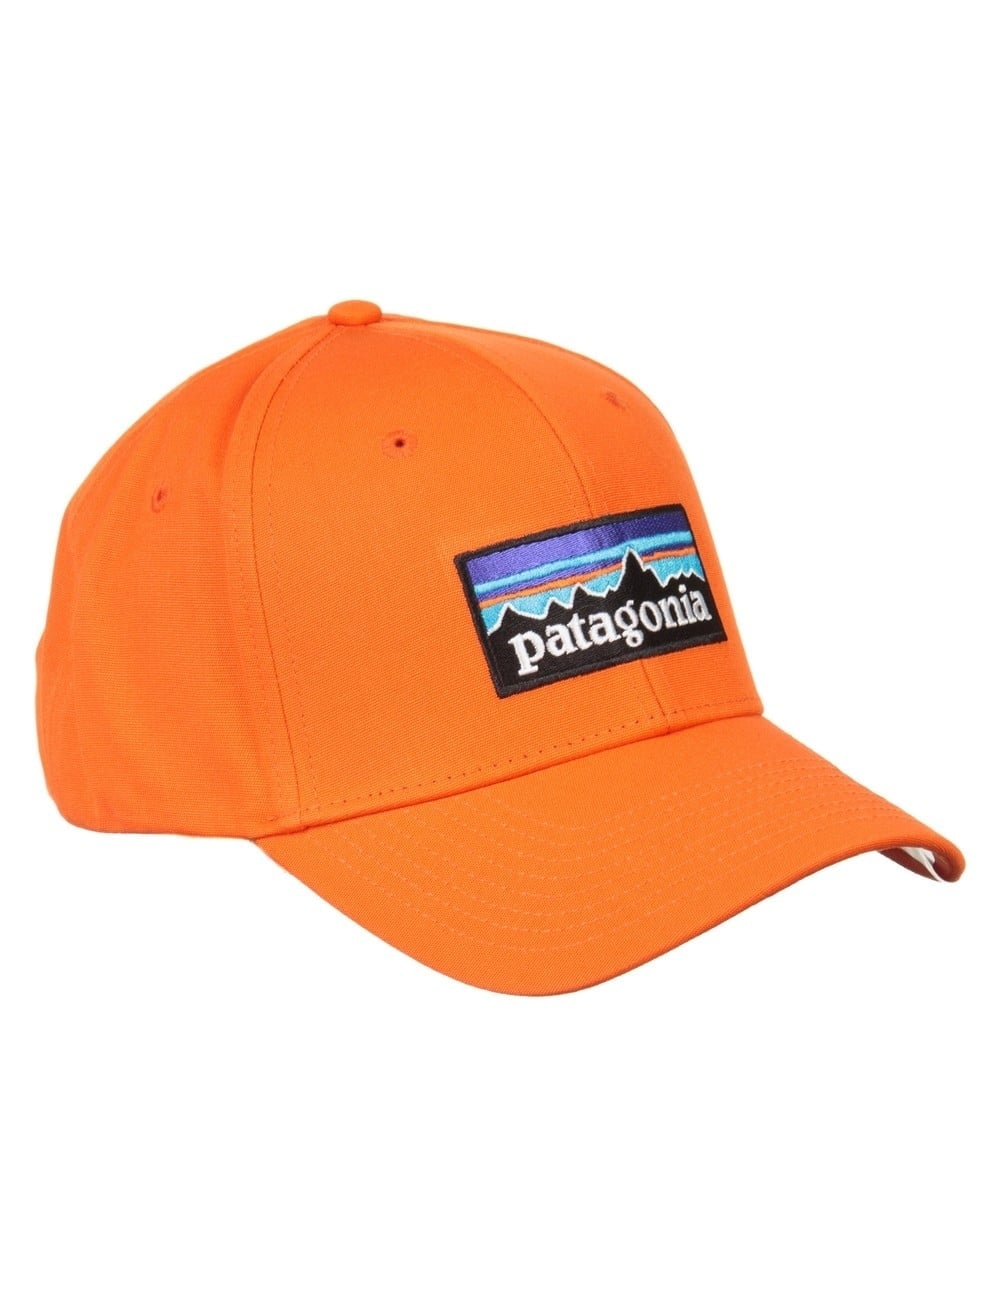 875e1d01 Patagonia P-6 Logo Roger That Hat - Campfire Orange - Accessories ...